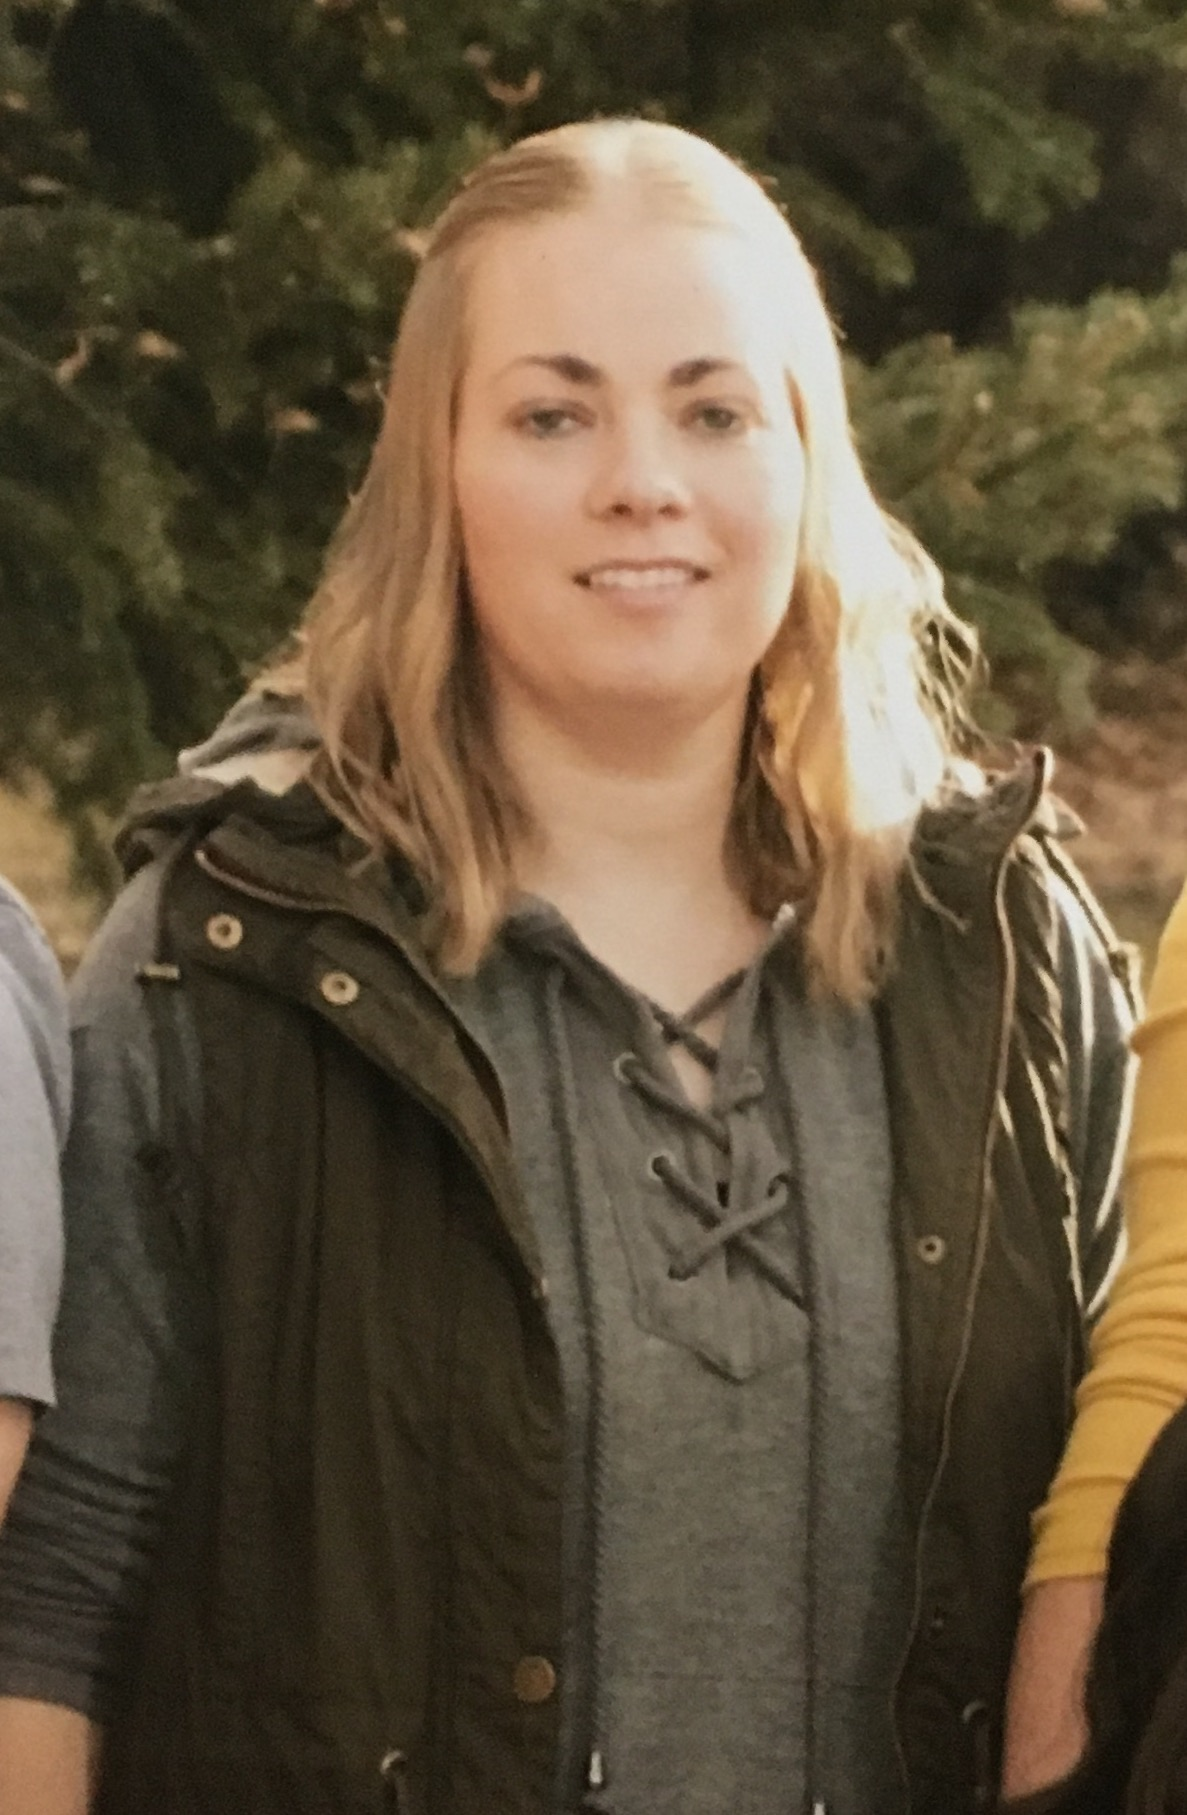 Tracy Lewis of Eden, Utah, was last seen in Ocean Shores on March 9. Police are seeking any information that will help determine her whereabouts. (Ocean Shores Police Department)